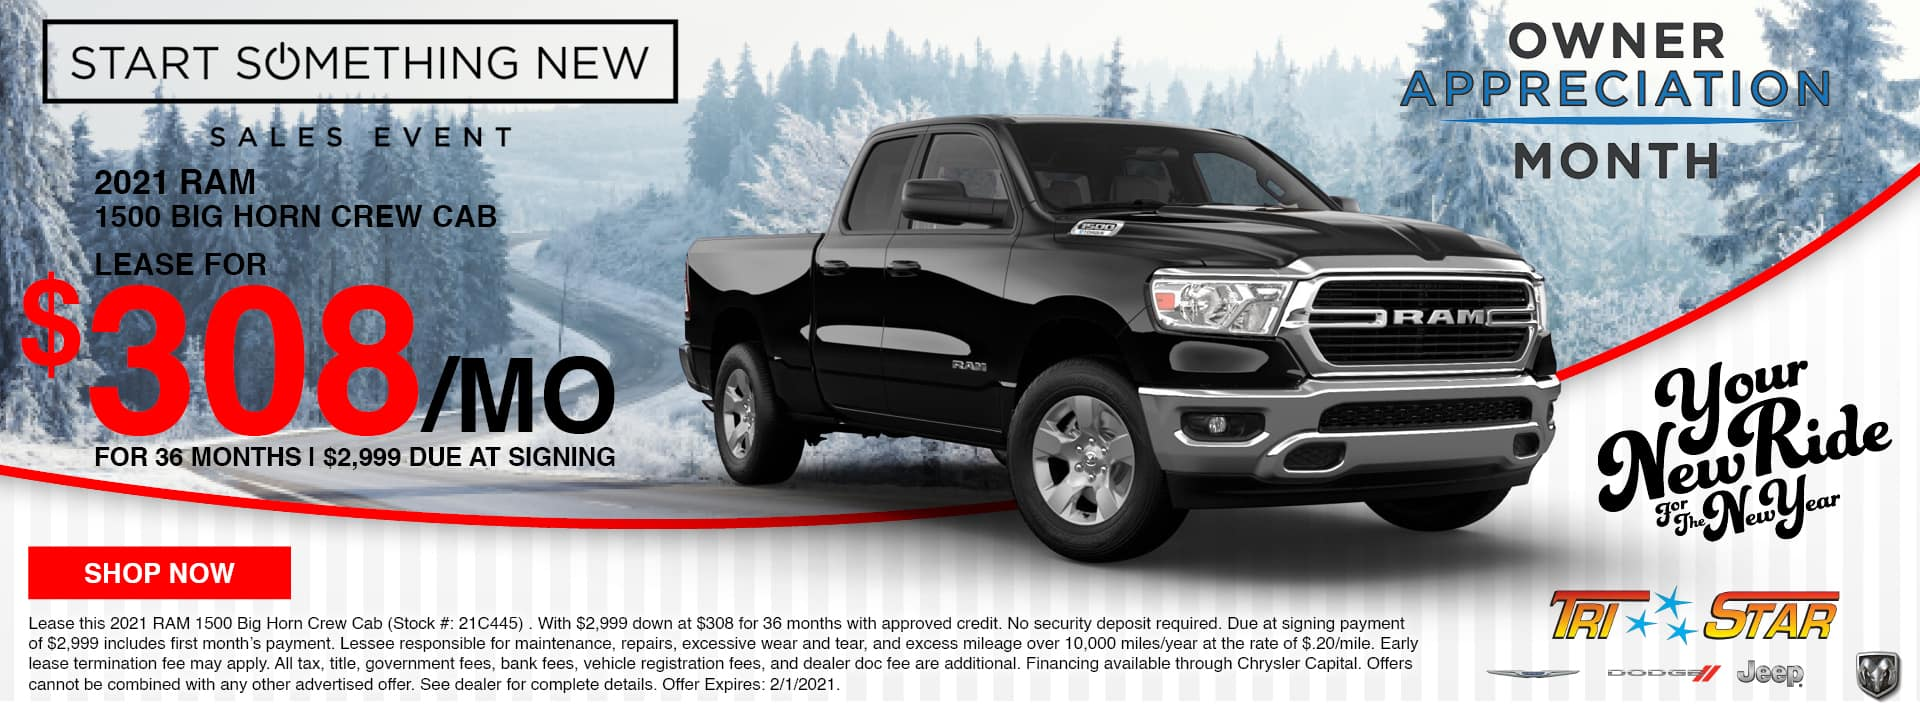 Lease a 2021 Ram 1500 for $308/mo